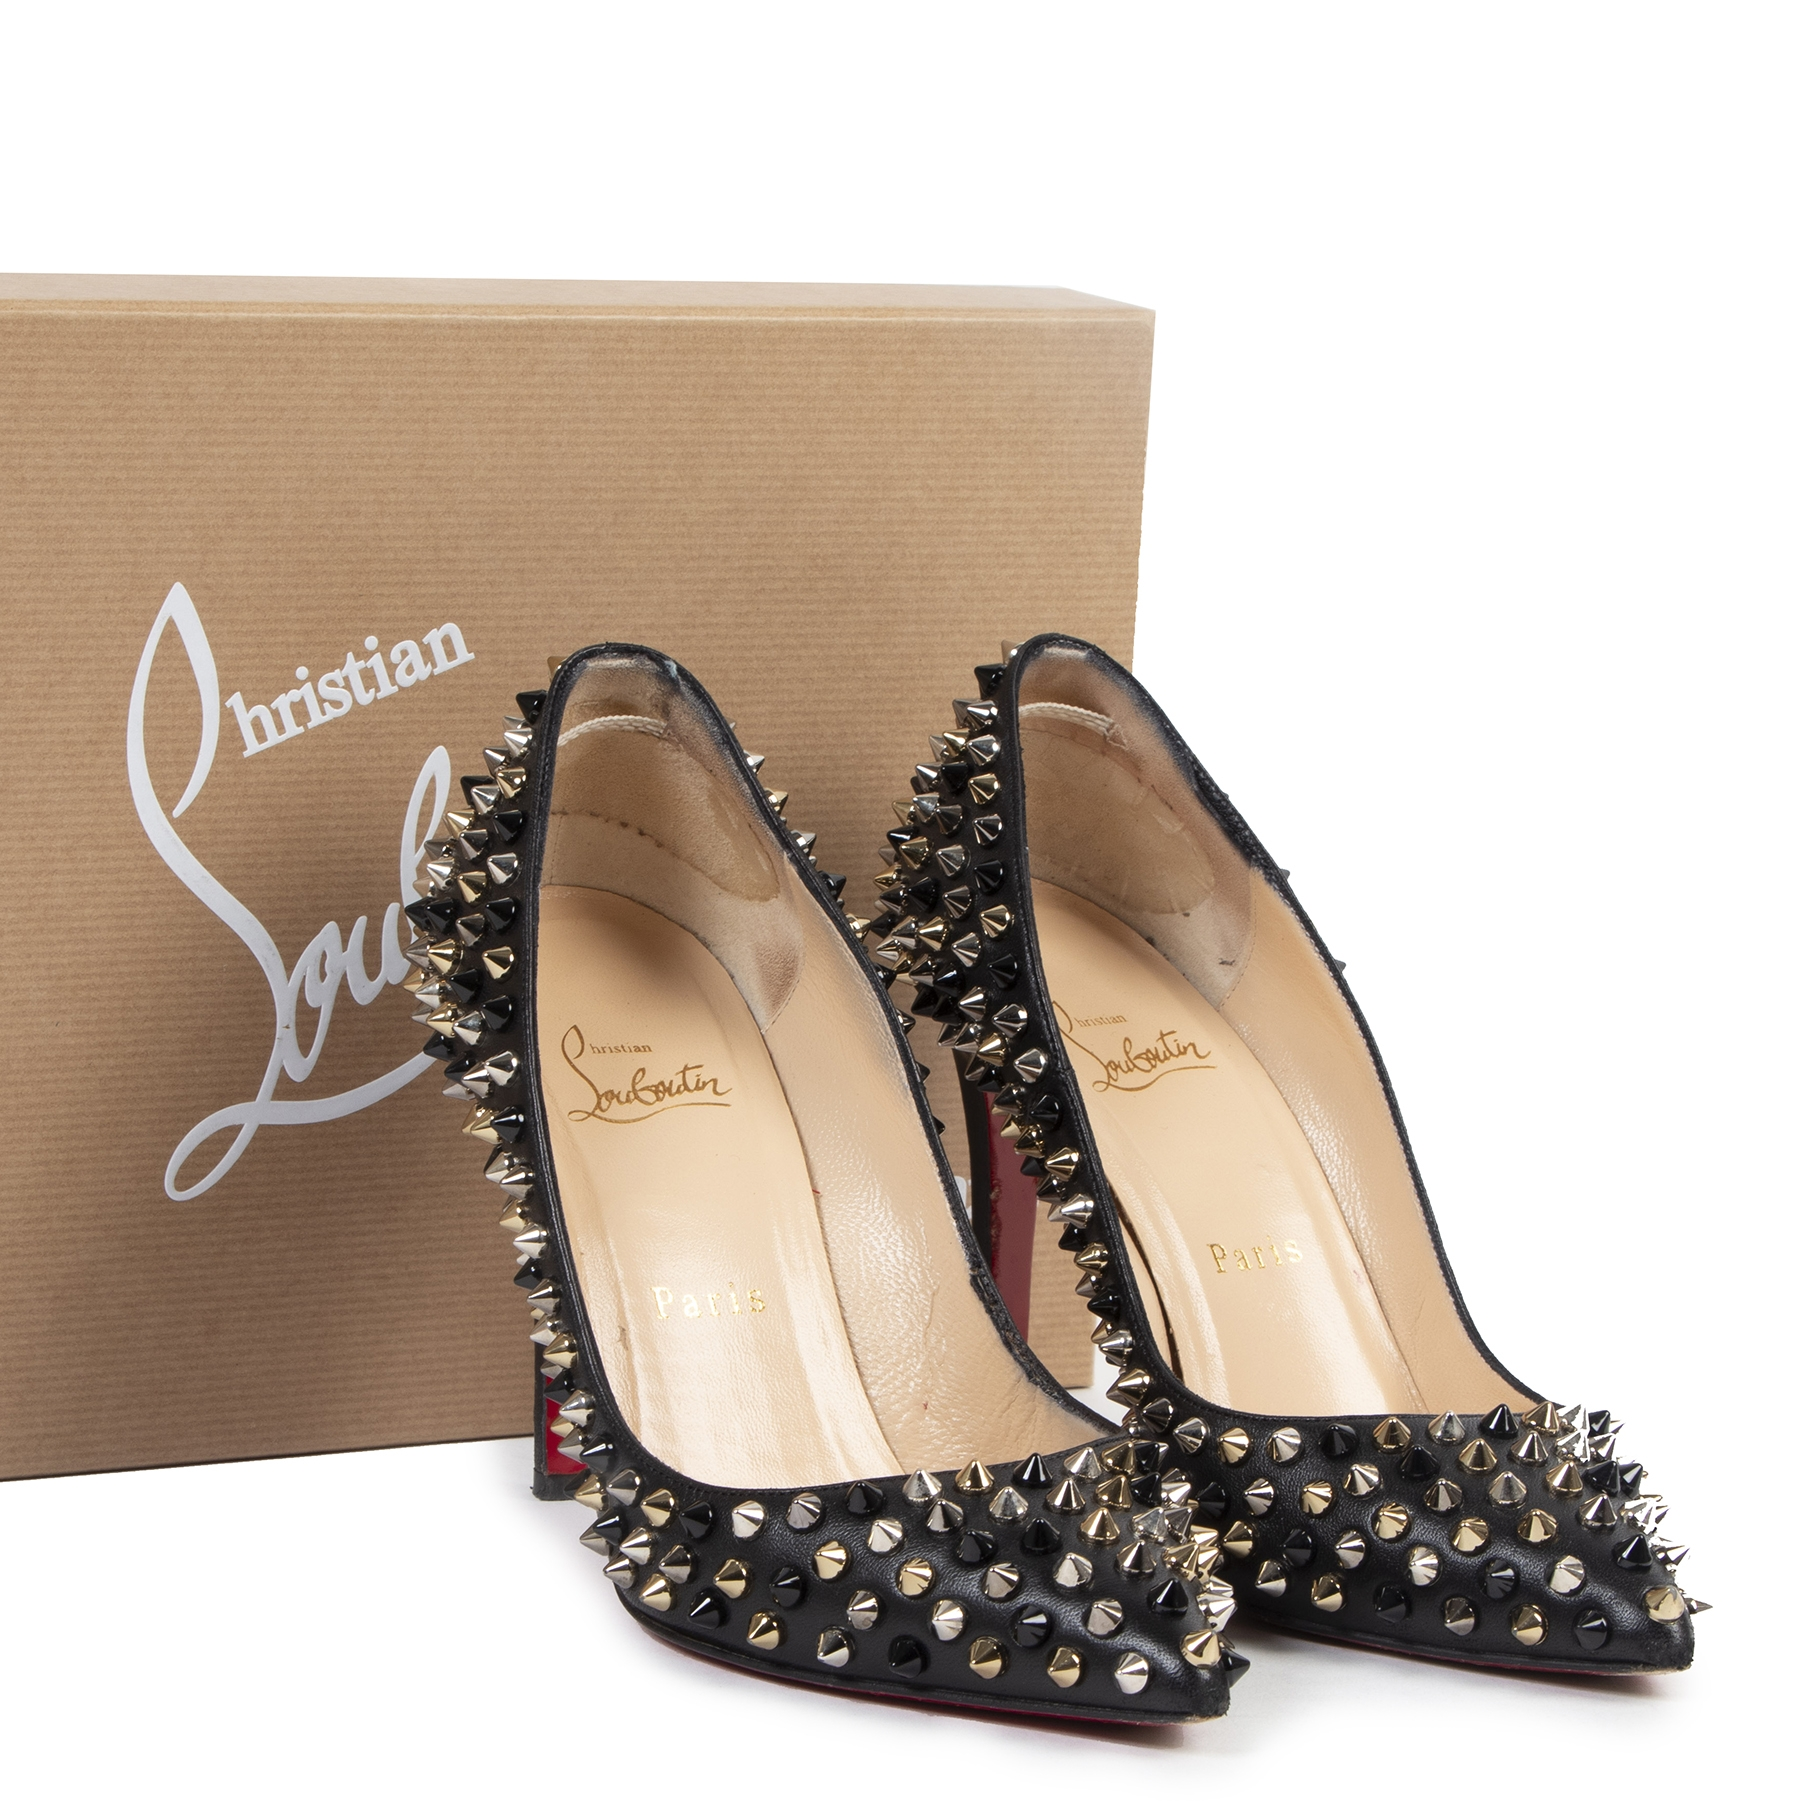 Christian Louboutin Pigalle Spike 100 Black Nappa Pumps